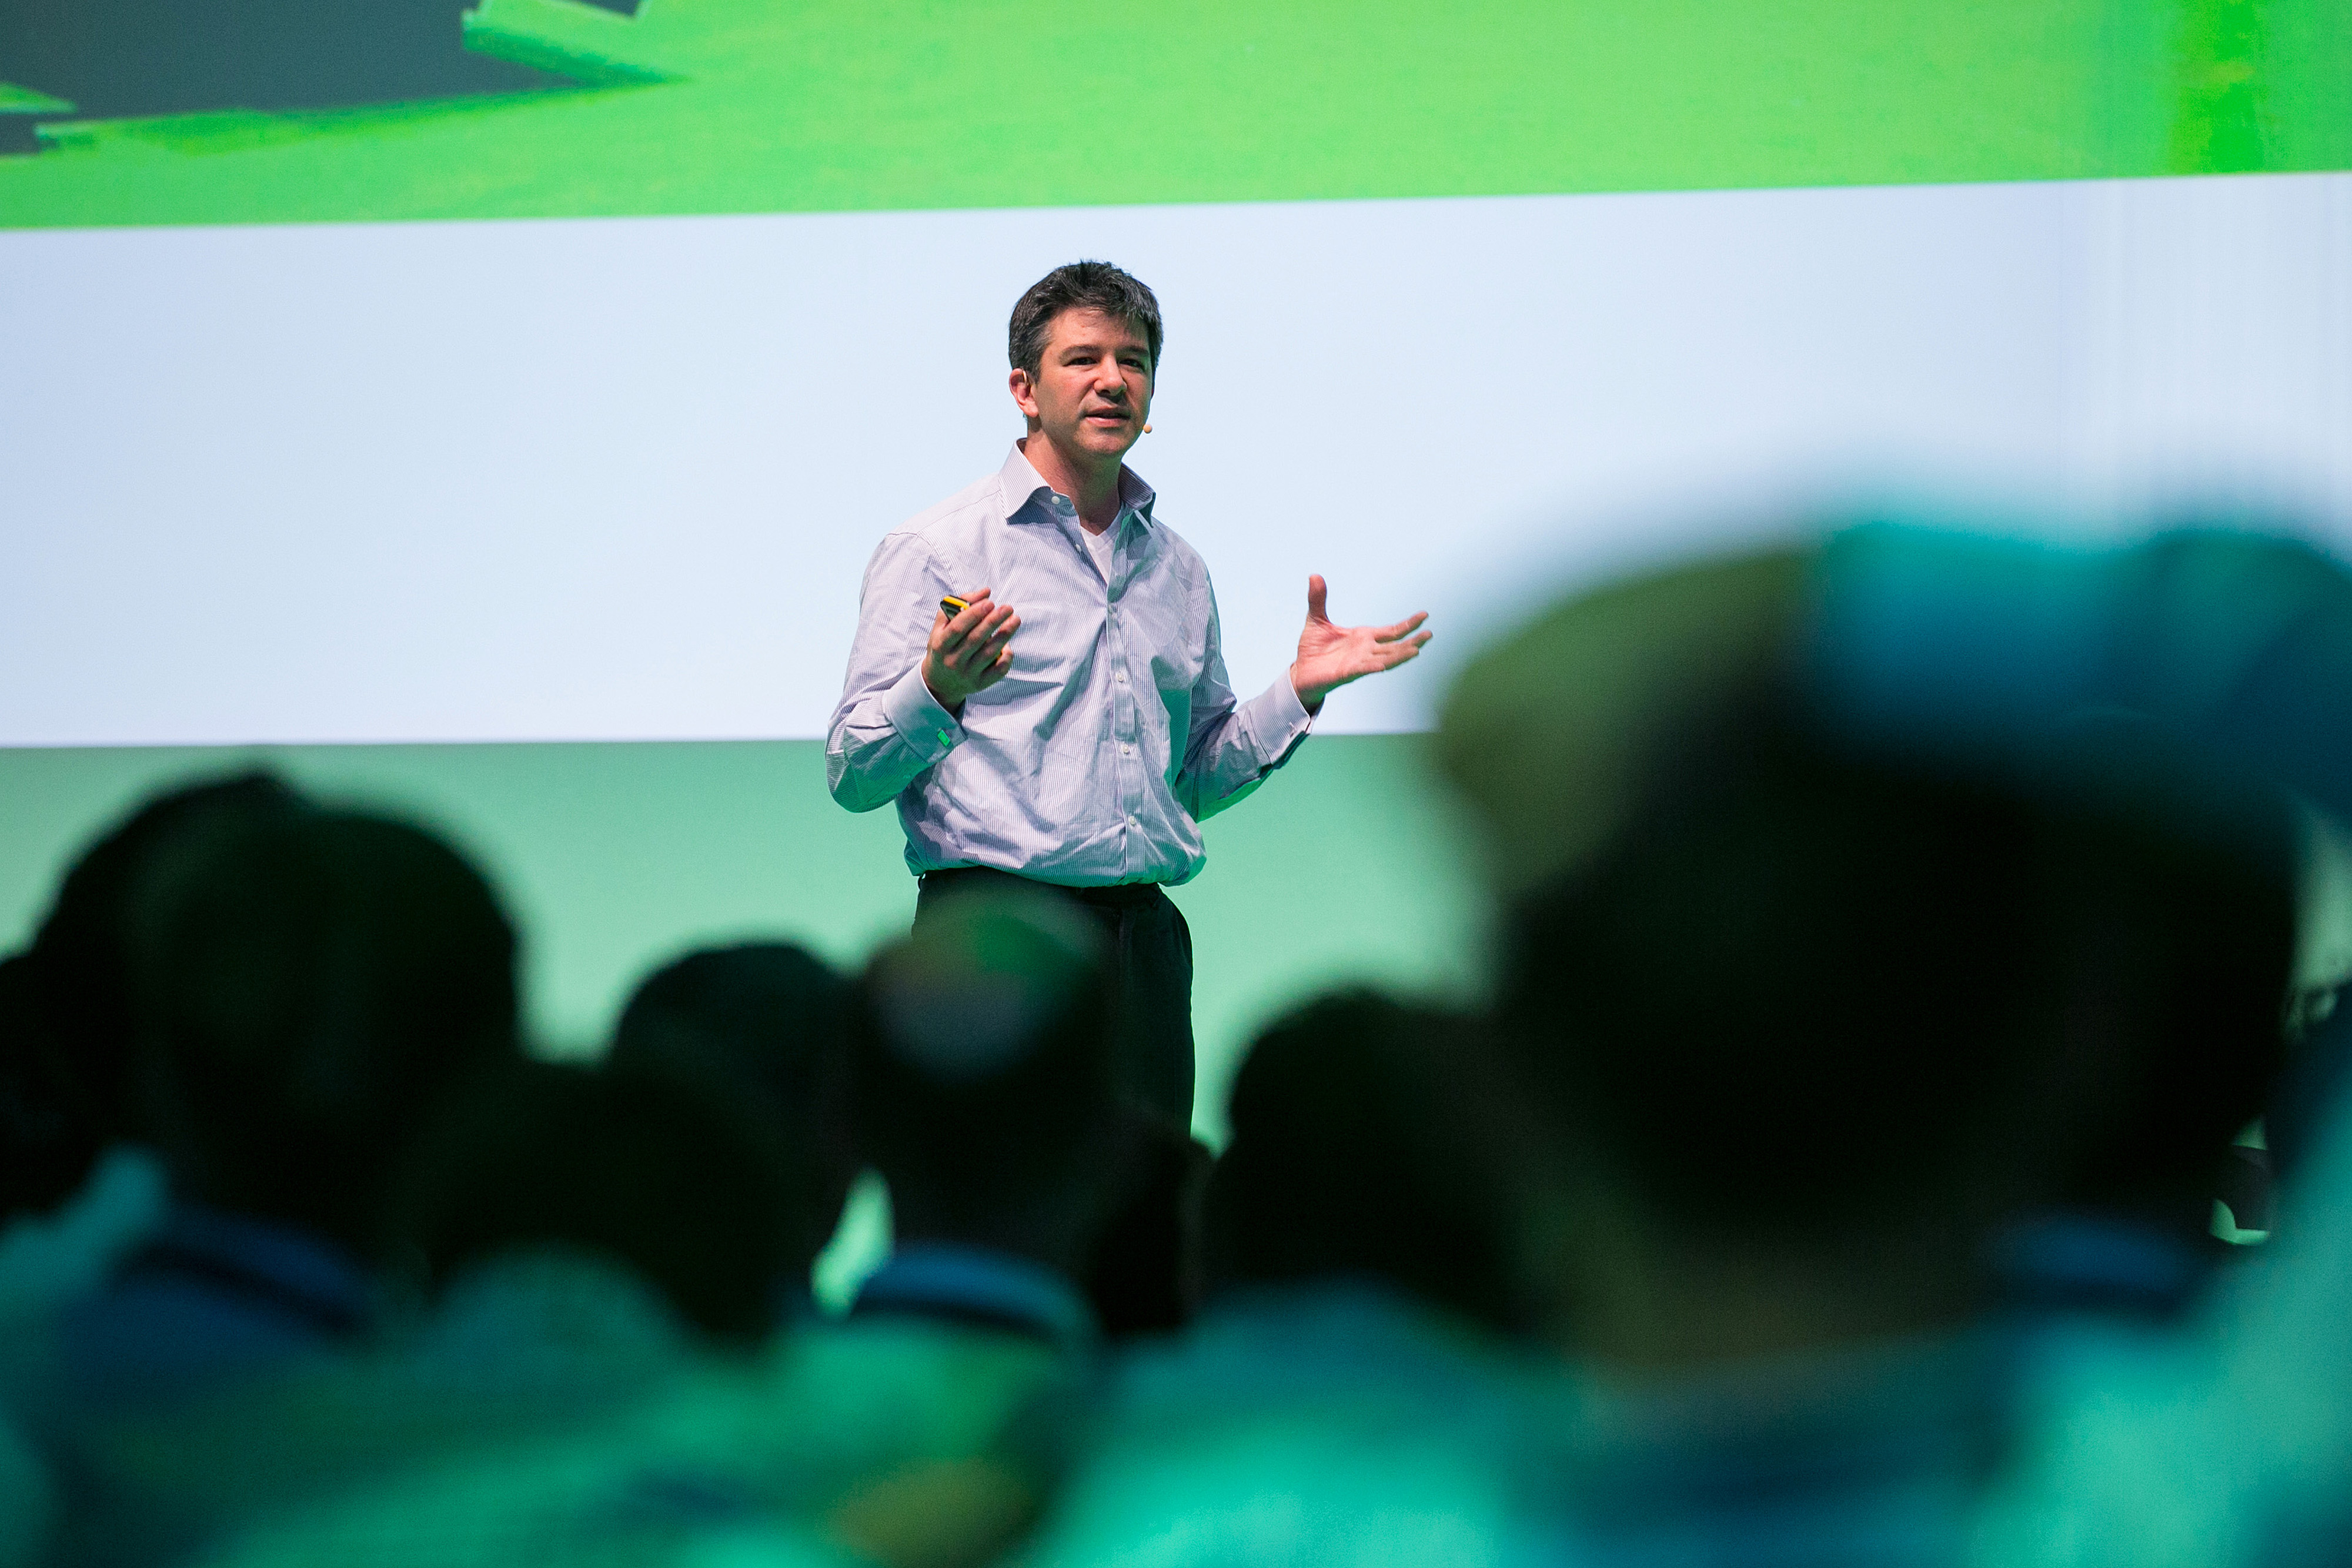 Travis Kalanick, billionaire and chief executive officer of Uber Technologies Inc., speaks during the Noah technology conference in Berlin, Germany, on Wednesday, June 8, 2016.